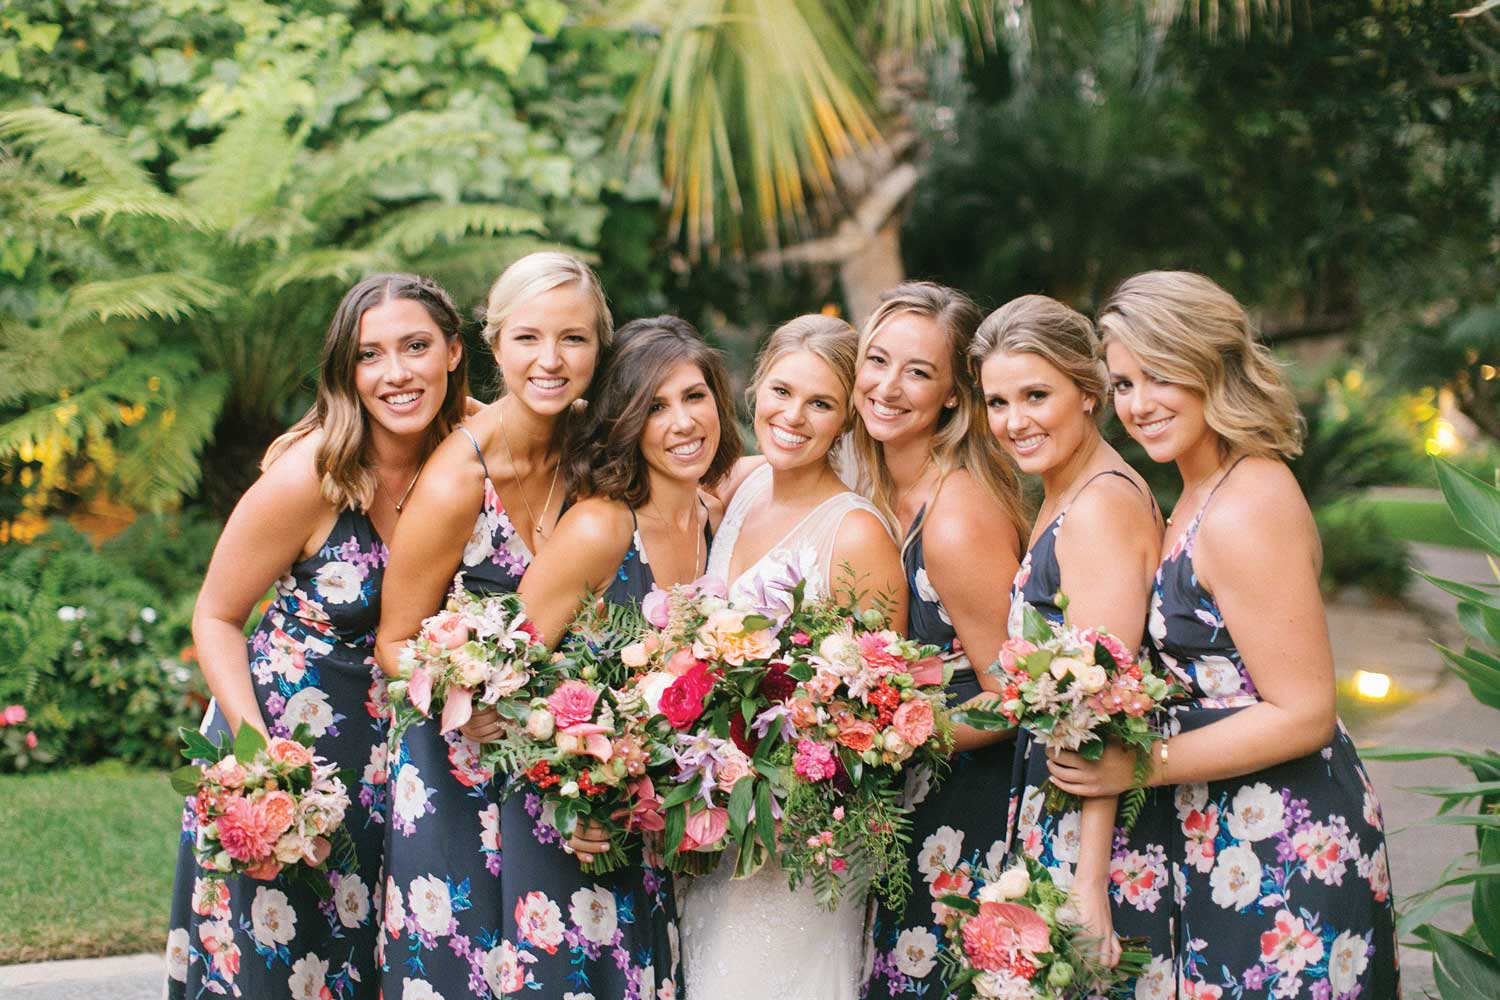 wedding photo of bride bridesmaids in flower print dresses floral print wedding ideas